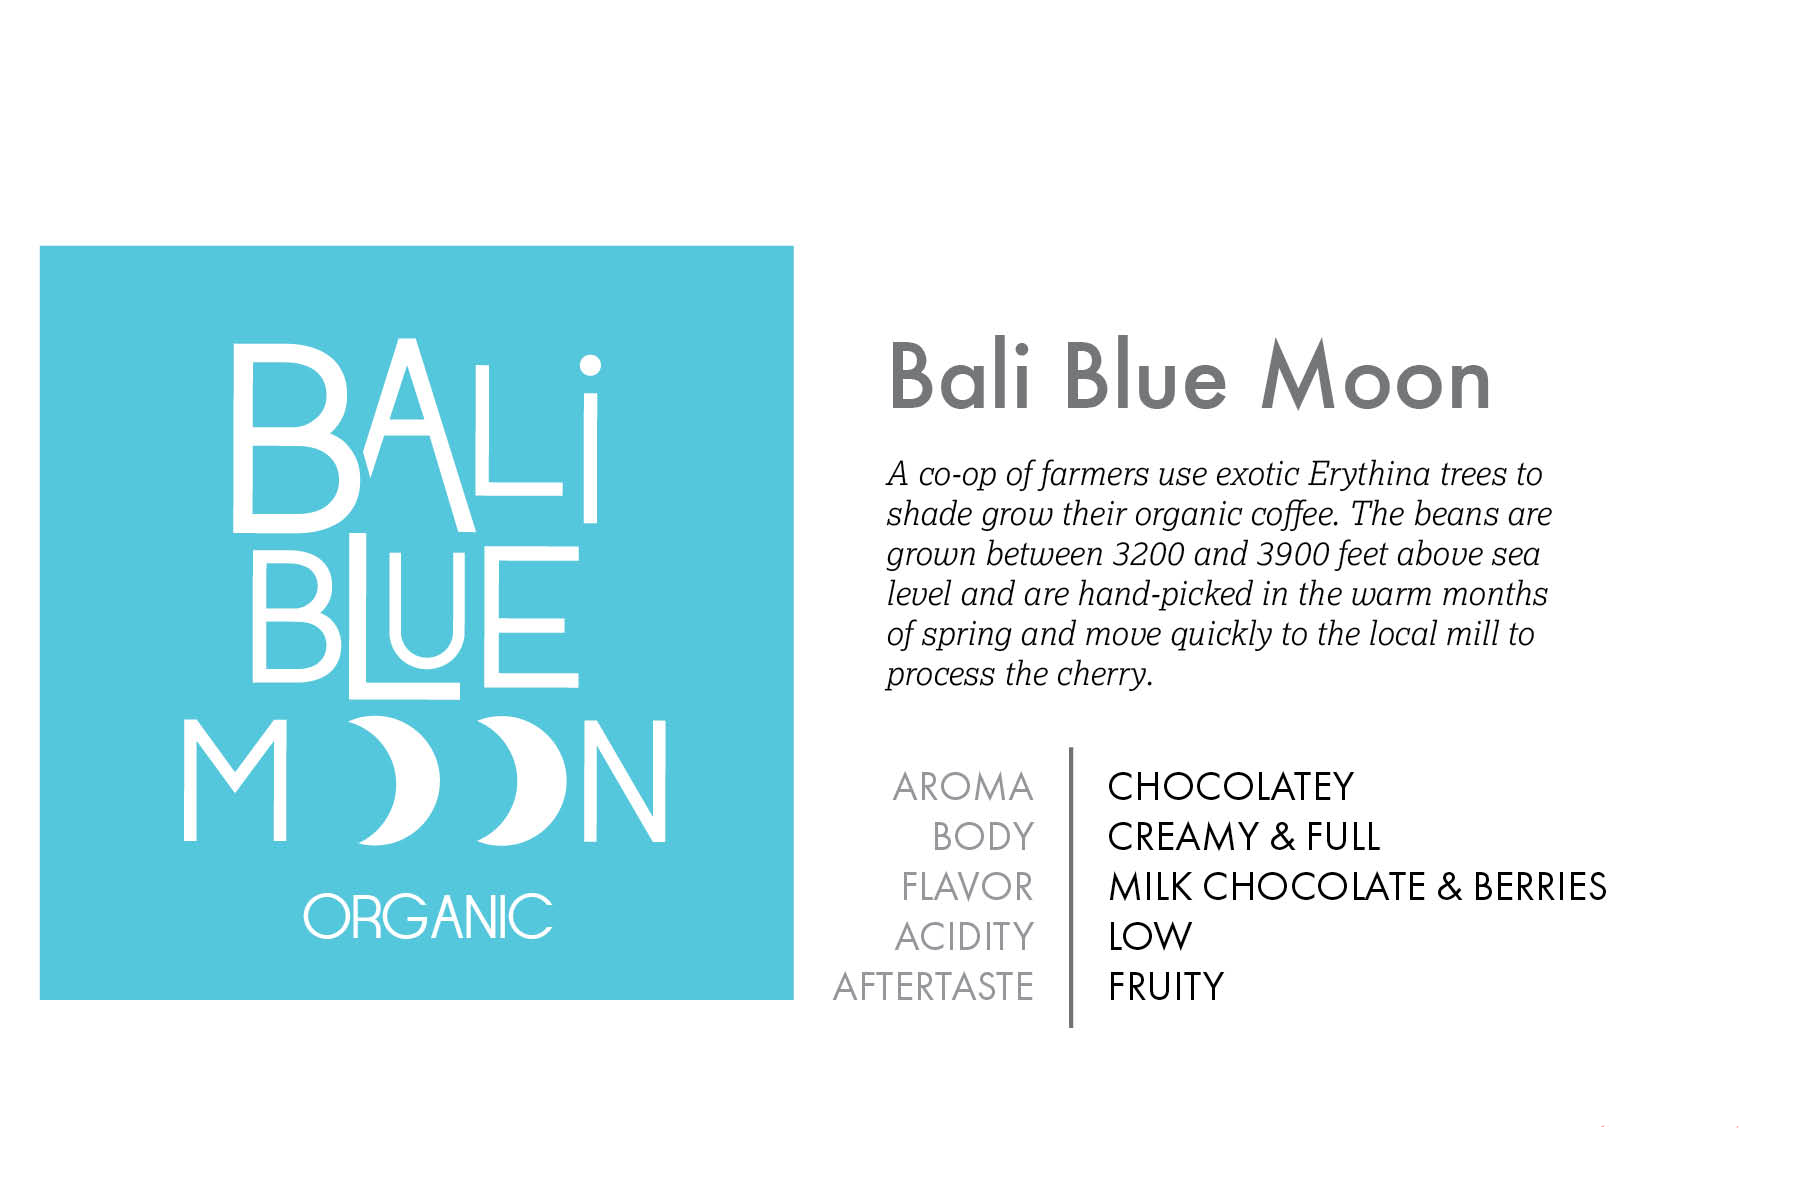 BaliBlueMoon